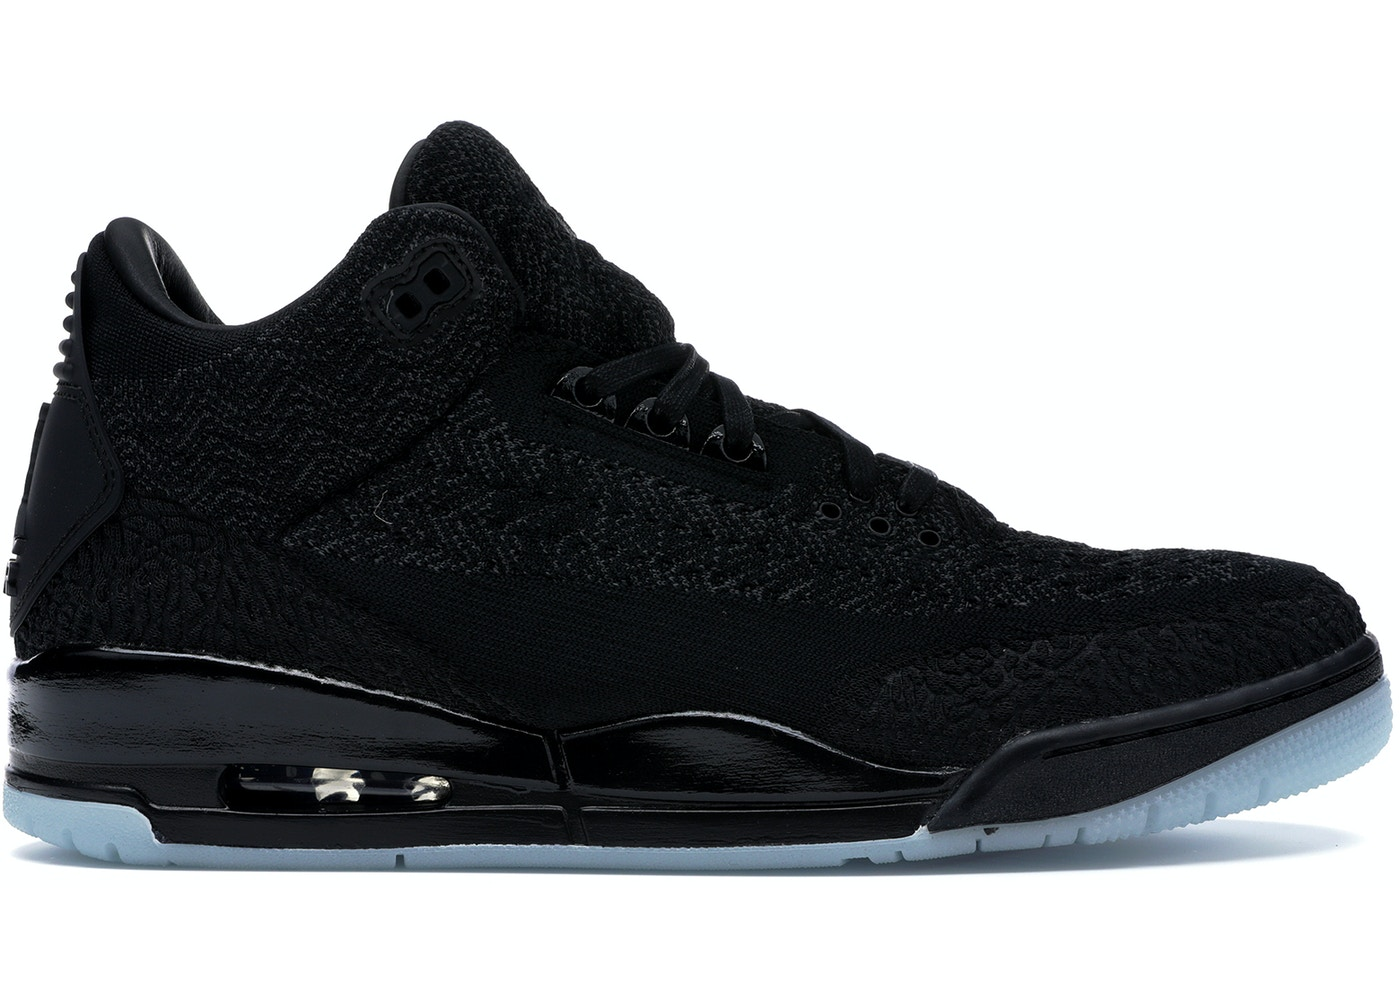 59690e97cfb0e5 Buy Air Jordan 3 Shoes   Deadstock Sneakers